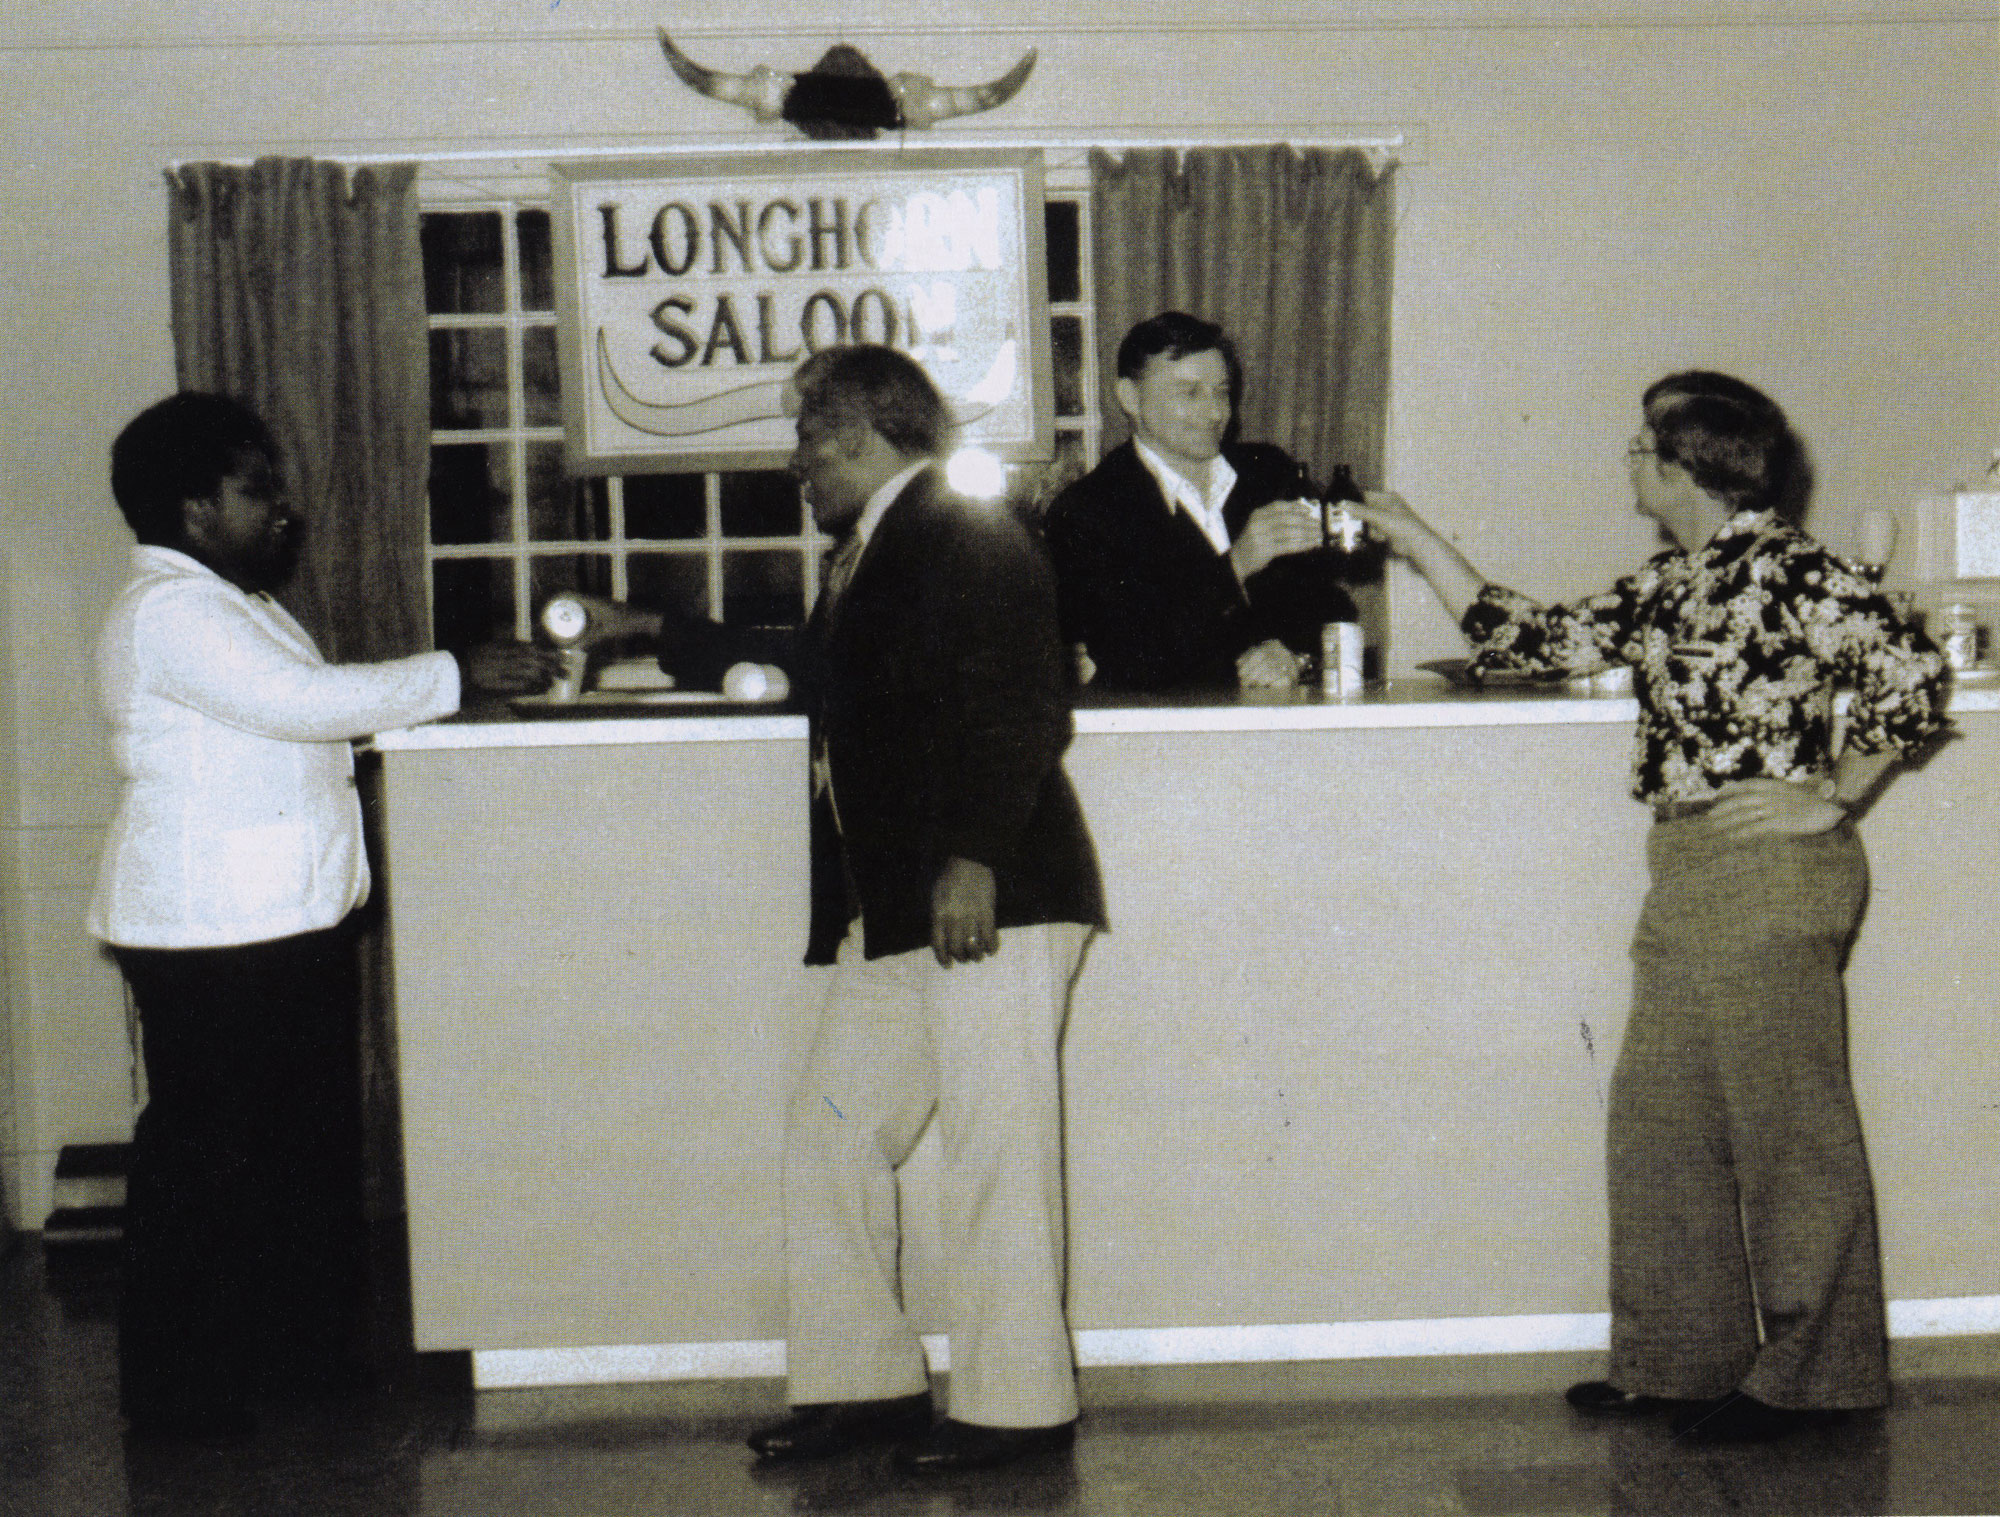 Man behind counter serving drinks and 3 men in front of counter.